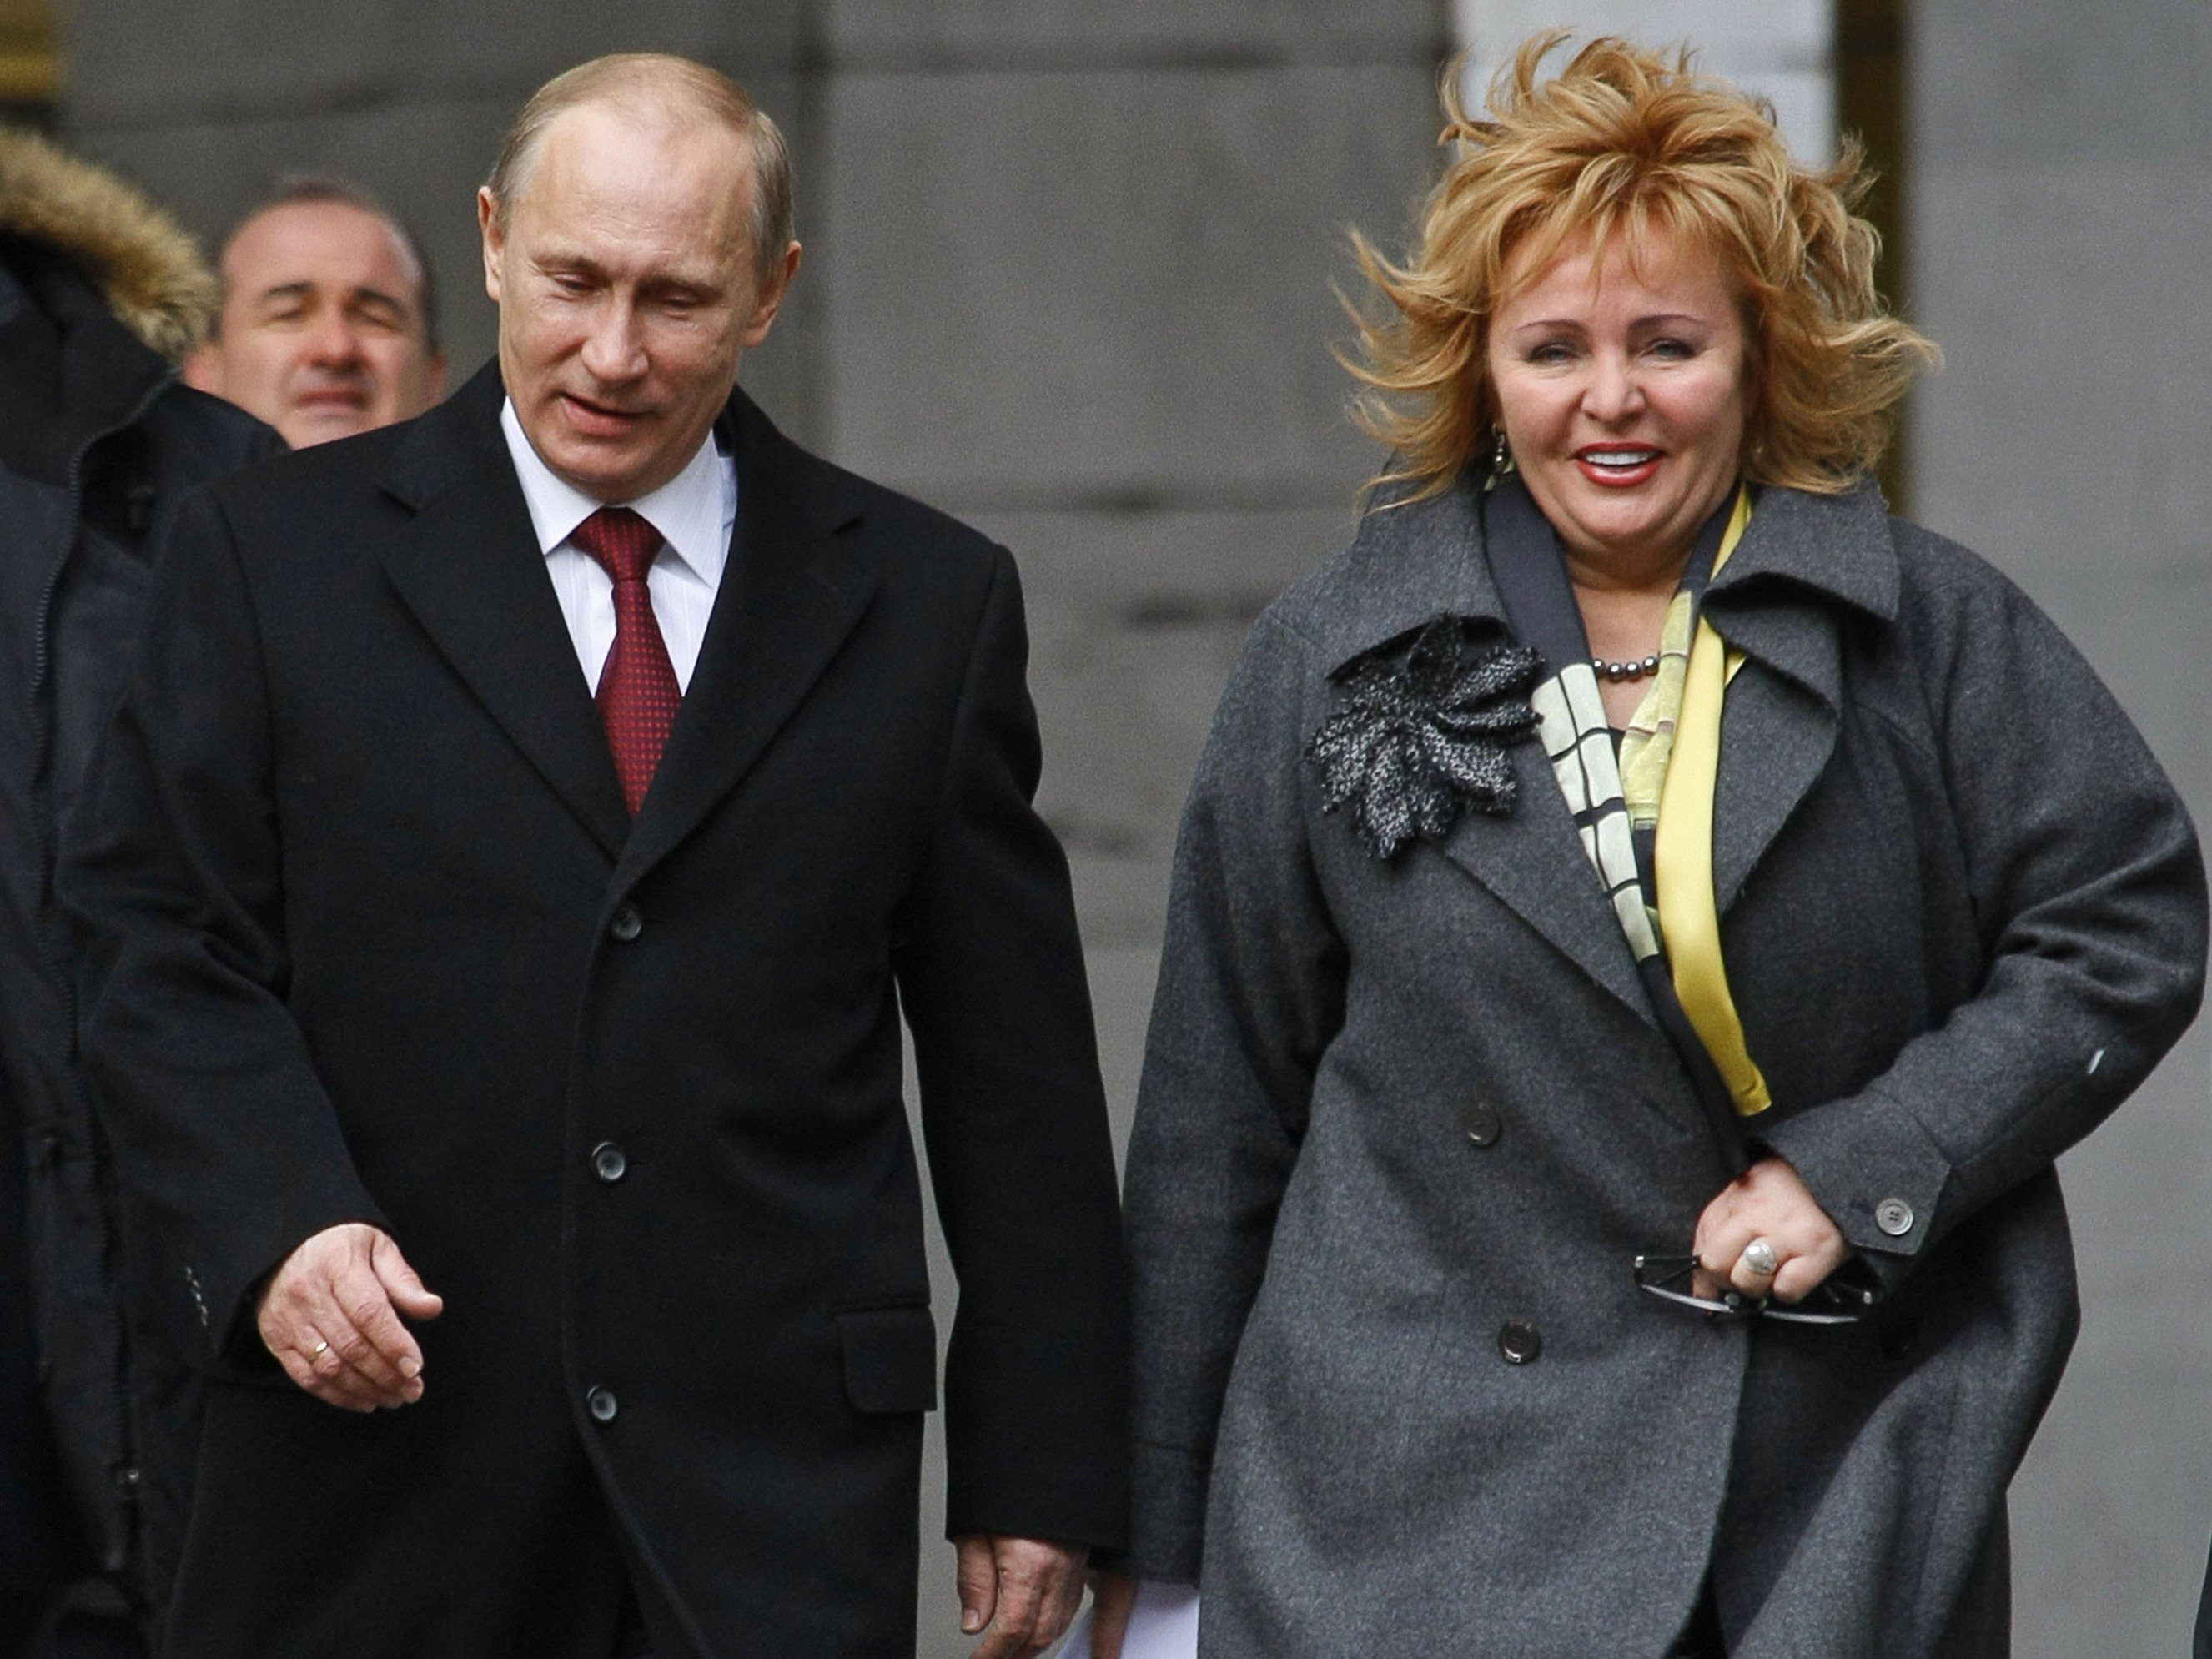 Putin Divorce Final Ex Wife Expunged From Kremlin Bio The Two Way Npr